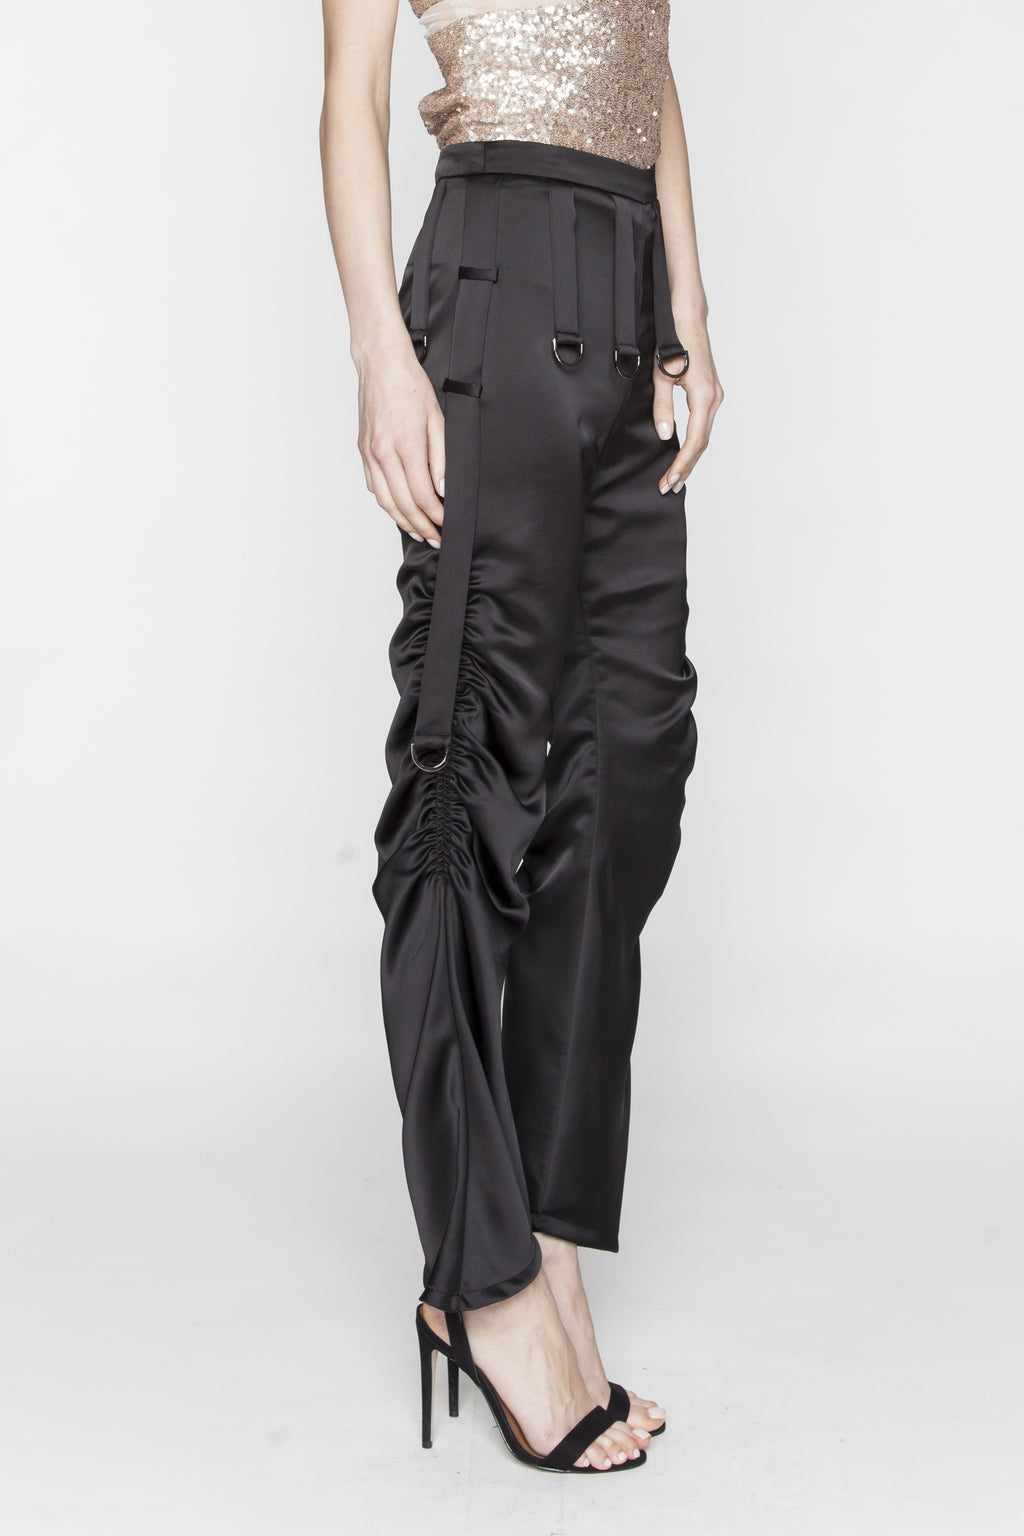 Black Updated Aaliyah Pants - Arianne Elmy